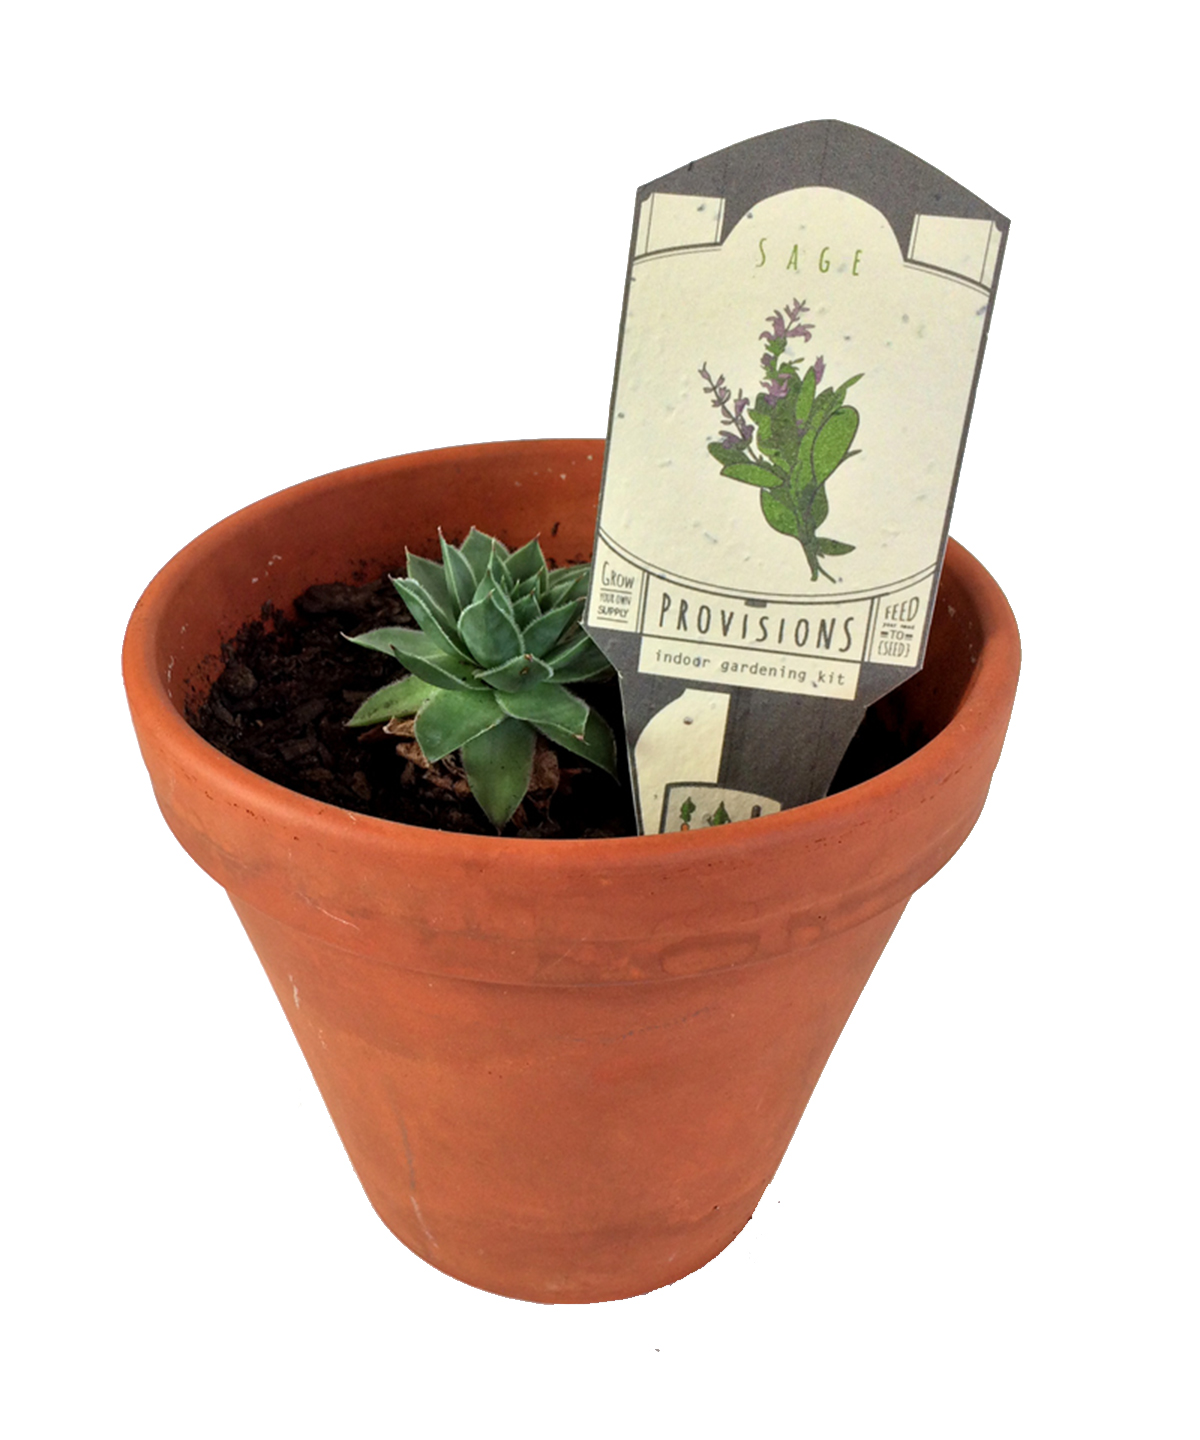 Provisions - Indoor Gardening Kit - Plant Tags